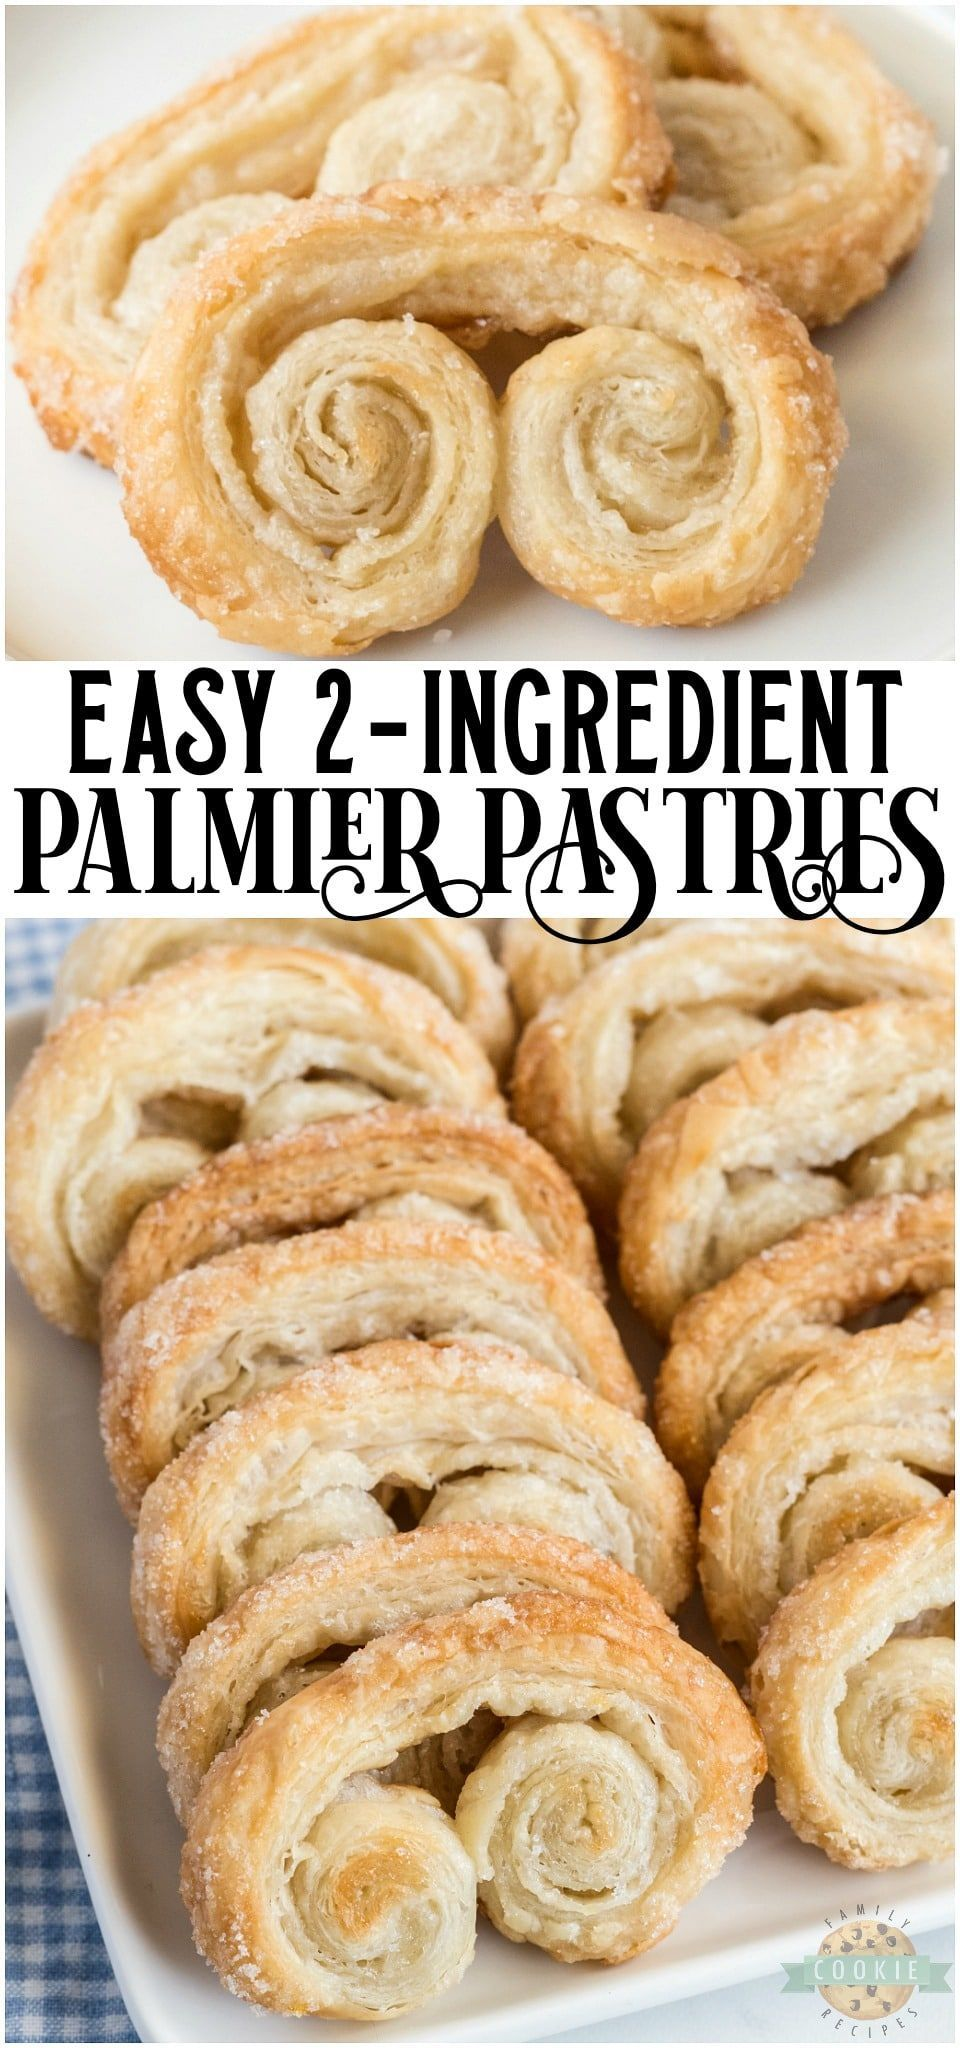 Easy Palmiers Recipe Family Cookie Recipes Recipe In 2020 Palmiers Recipe Recipes Cookie Recipes